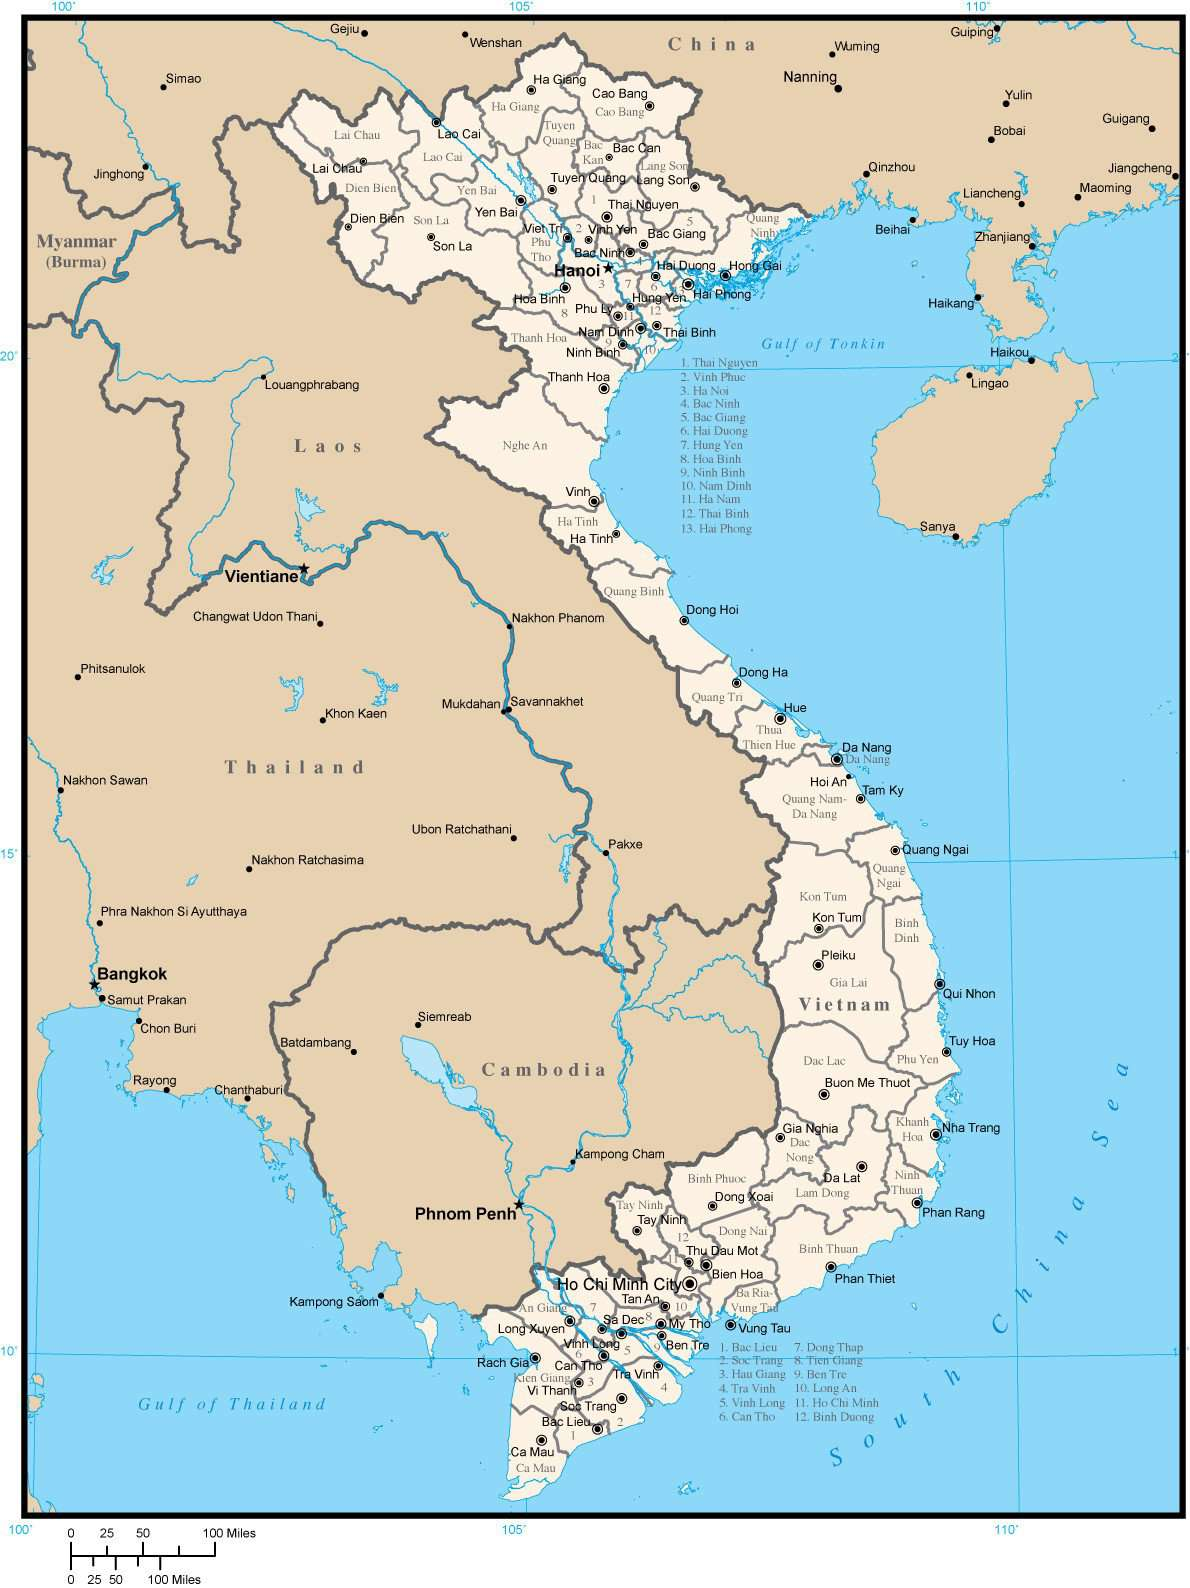 Picture of: Vietnam Map With Province Areas And Capitals In Adobe Illustrator